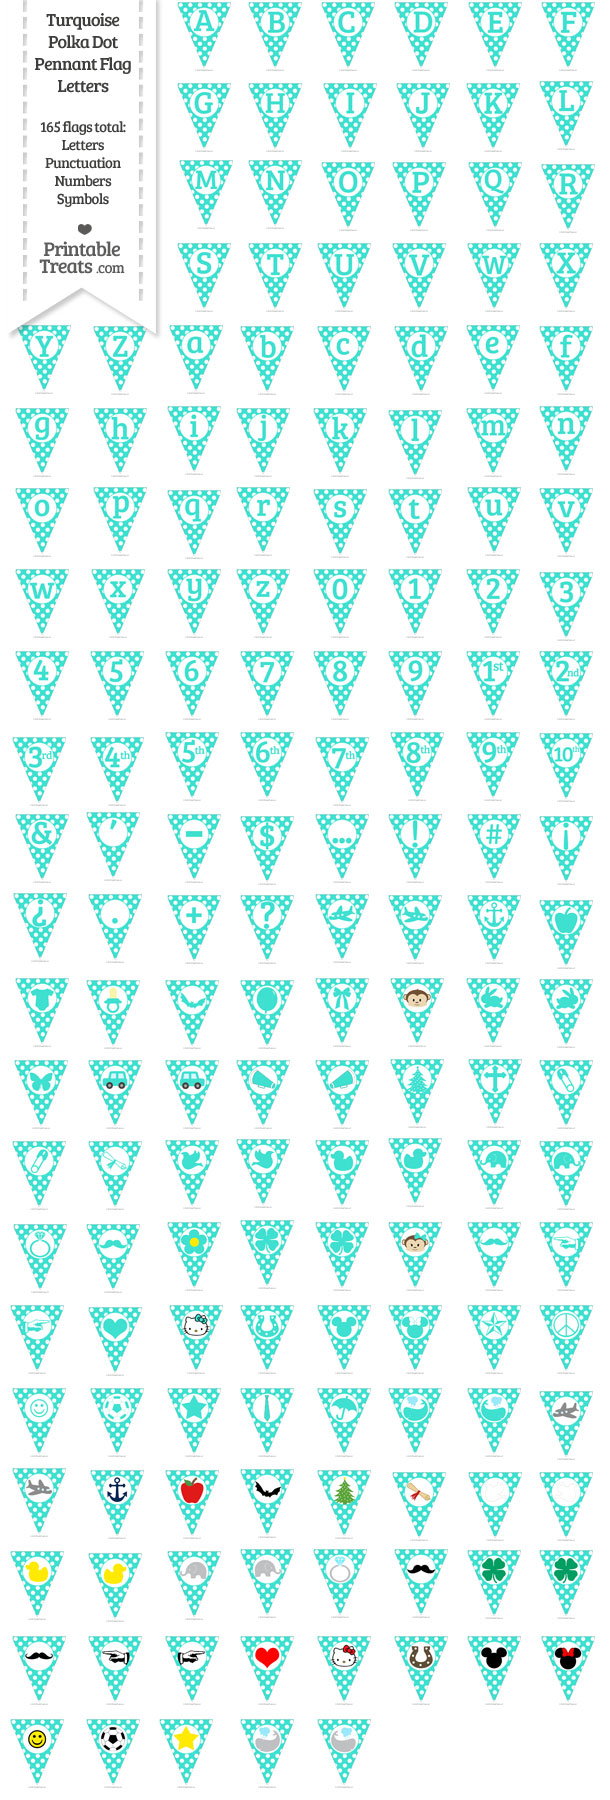 Turquoise Polka Dot Pennant Flag Letters Download from PrintableTreats.com